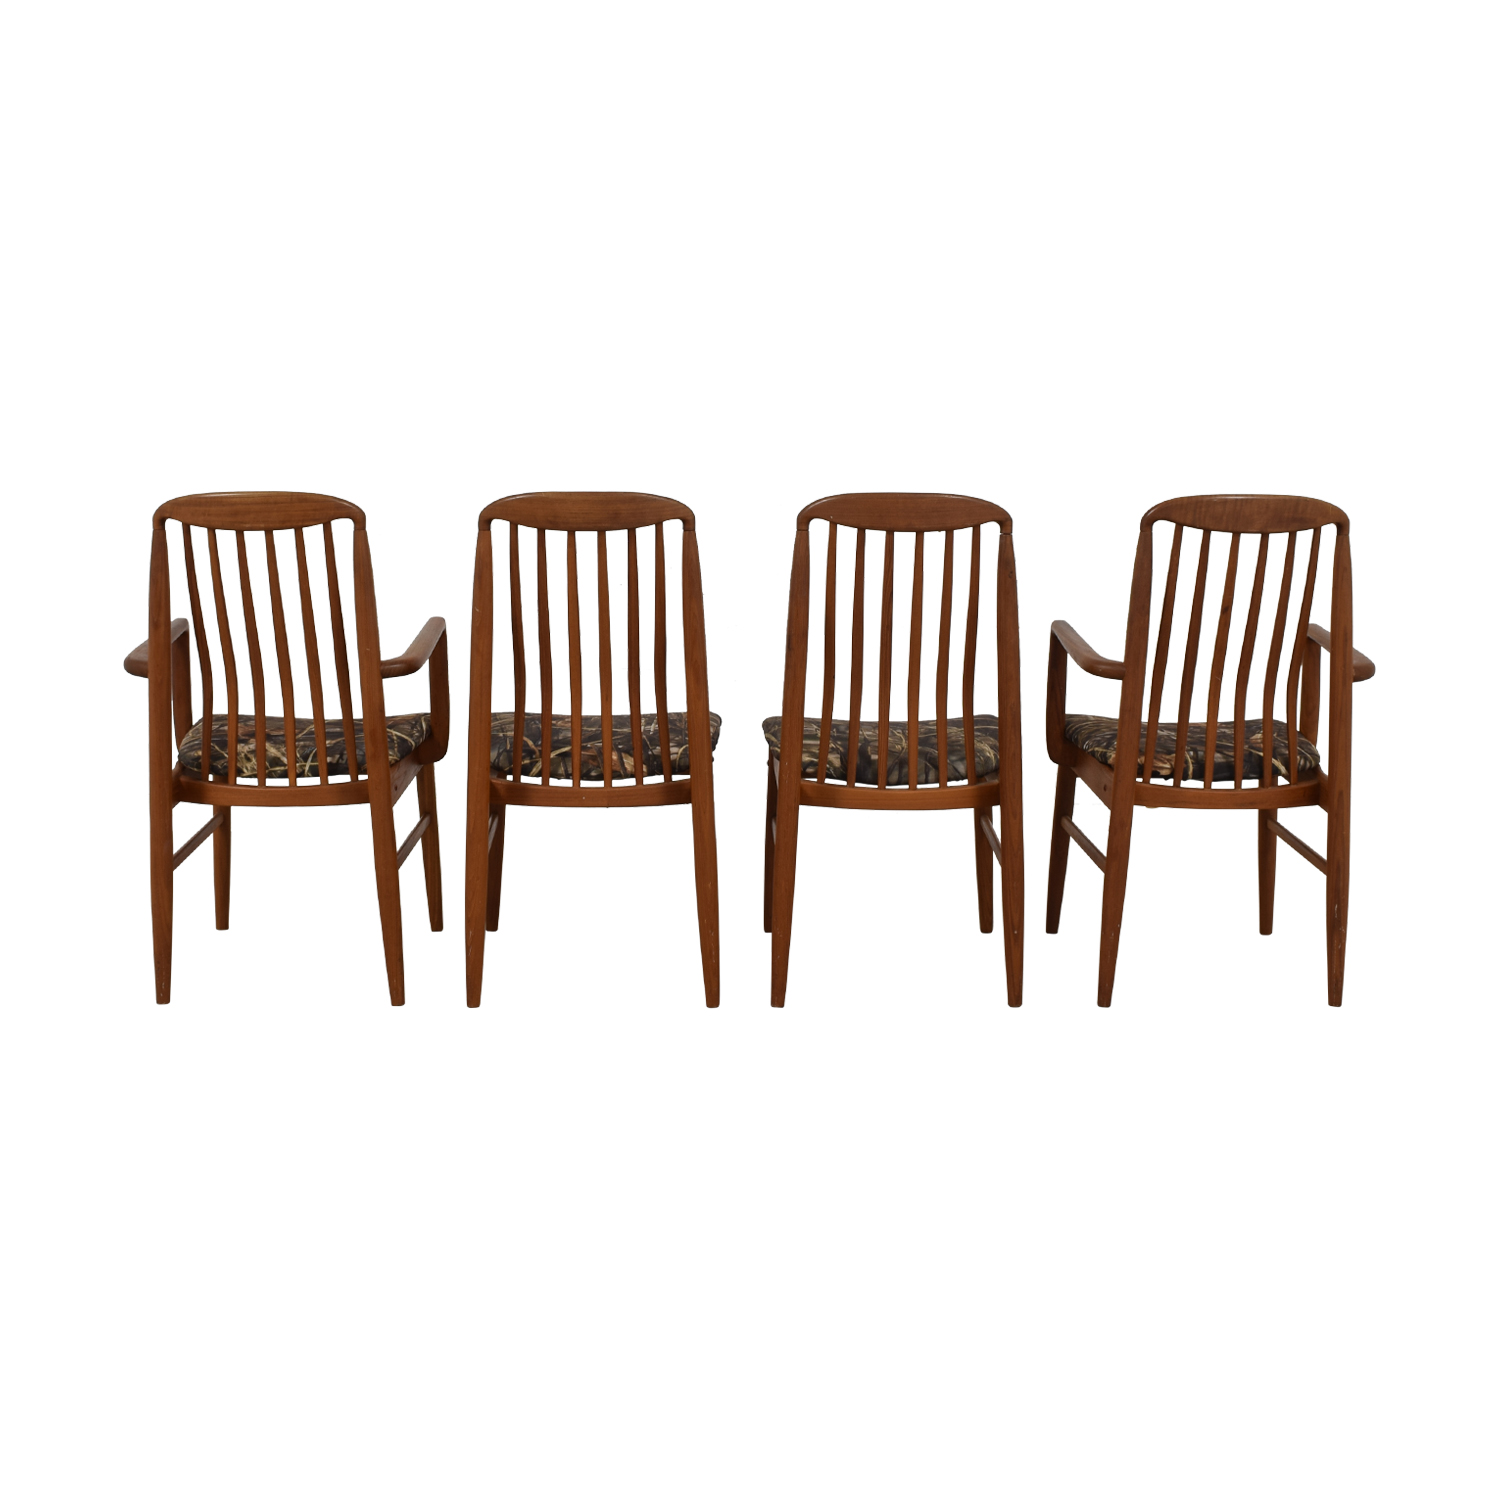 Scan Design Scan Design Danish Wood Curved Back Dining Chairs coupon